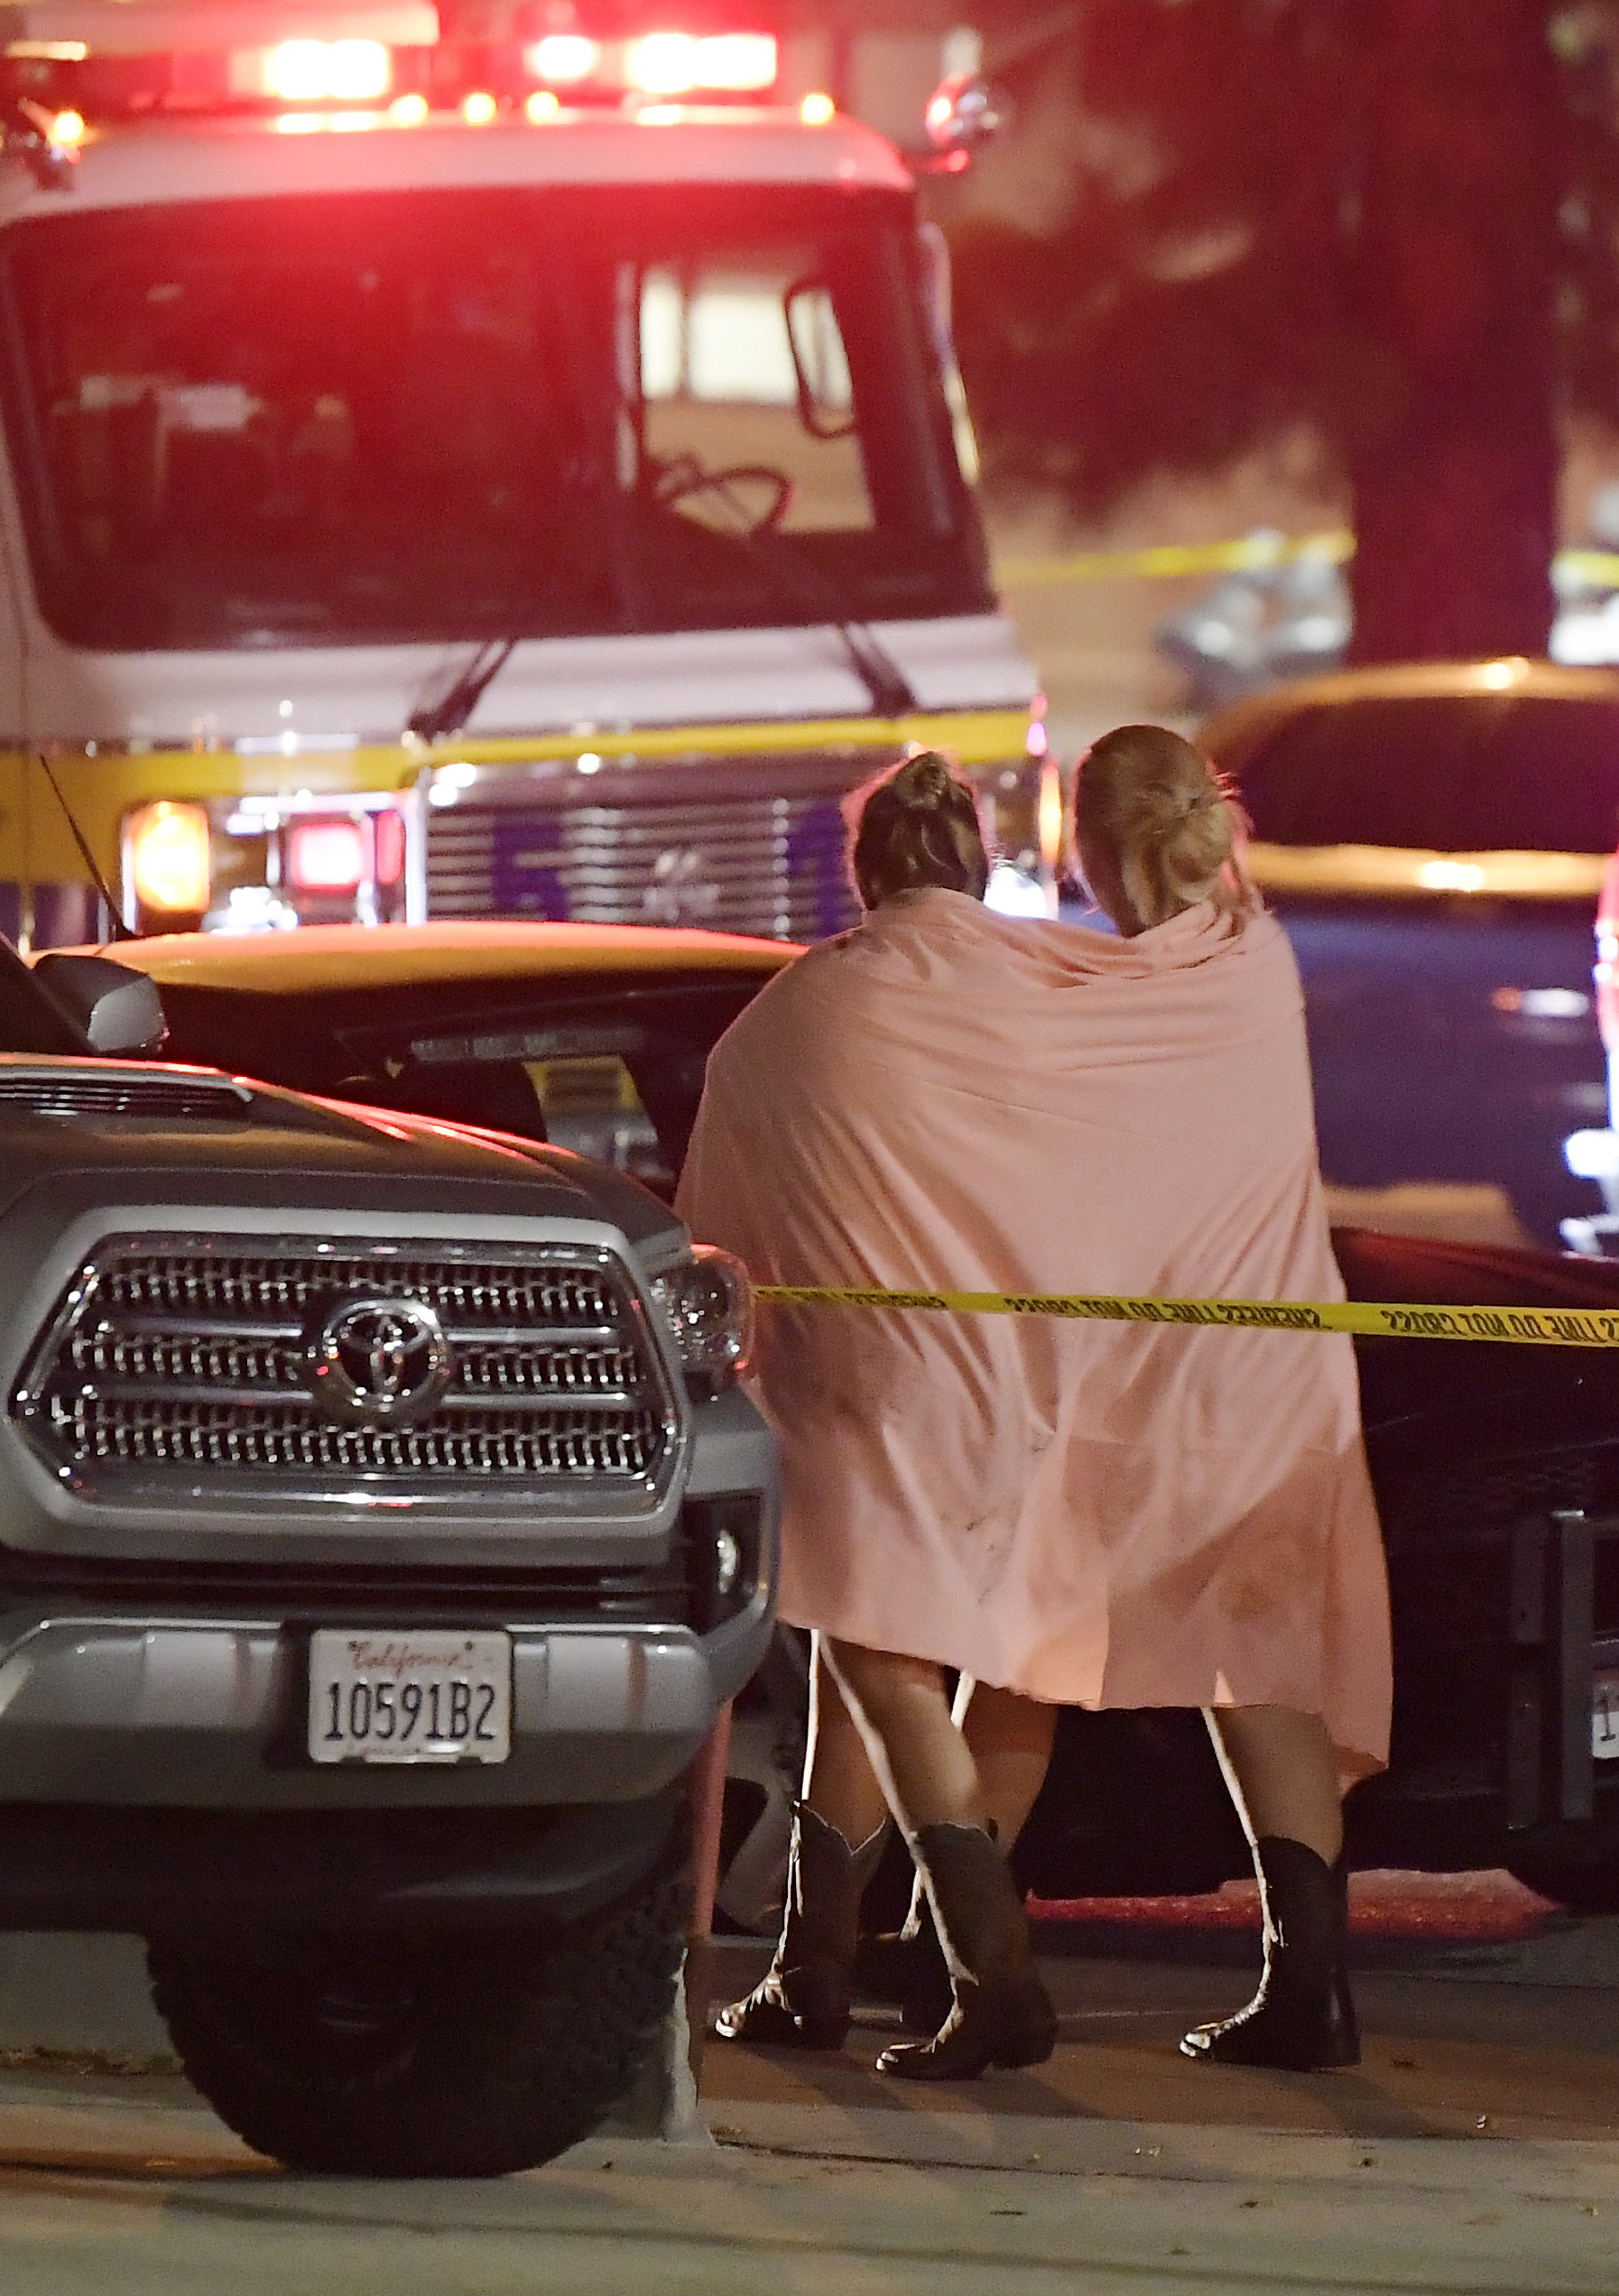 "<div class=""meta image-caption""><div class=""origin-logo origin-image none""><span>none</span></div><span class=""caption-text"">People walk away from the scene after a gunman opens fire on a nightclub in California. (AP Photo/Mark J. Terrill)</span></div>"